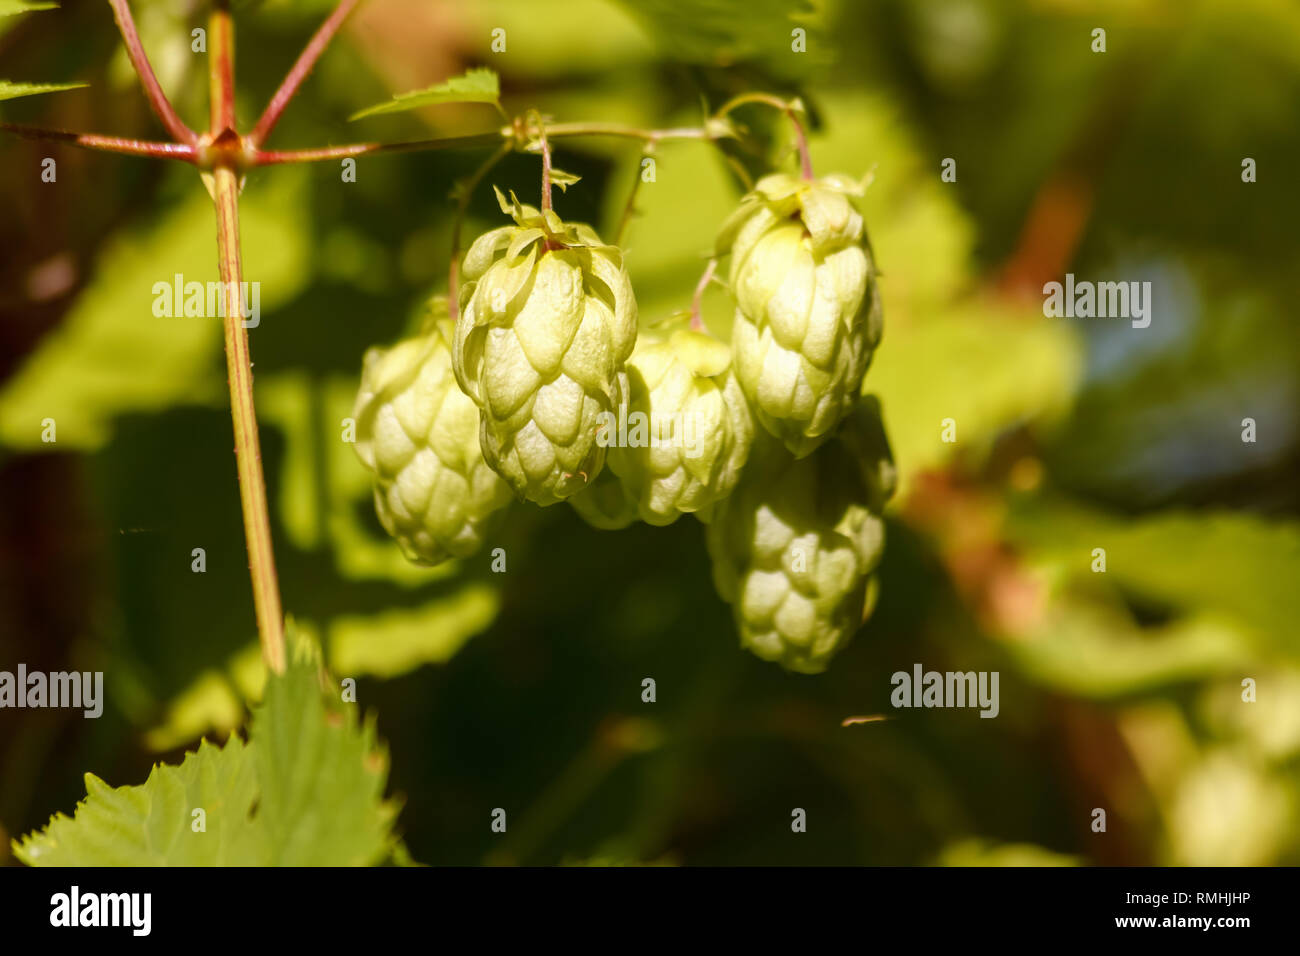 Green fresh hops cones for making beer and bread close-up, agricultural background, hops cones detail in hops field. Stock Photo